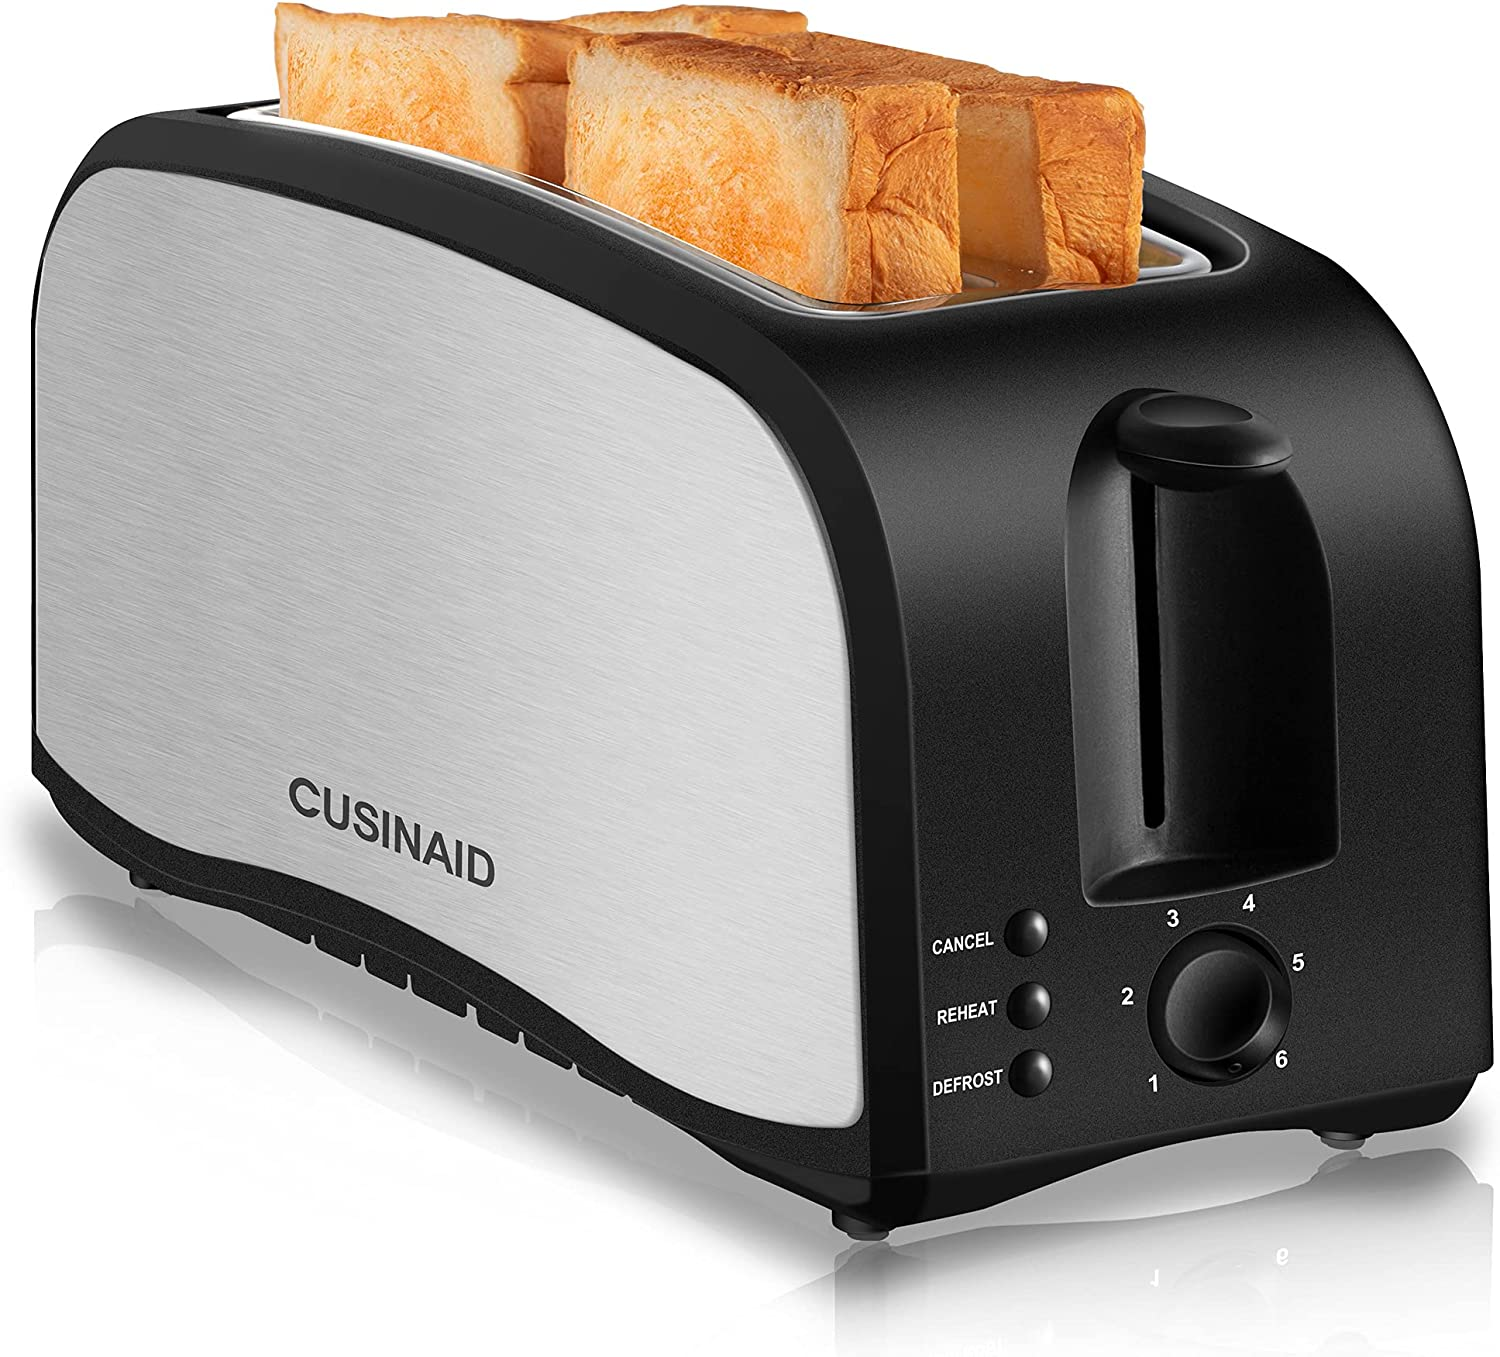 Toaster 4 Slice, CUSINAID 2 Long Slot Toasters with Defrost, Reheat, Cancel Function, Stainless Steel Toaster, 6 Browning Settings, Black, ST035